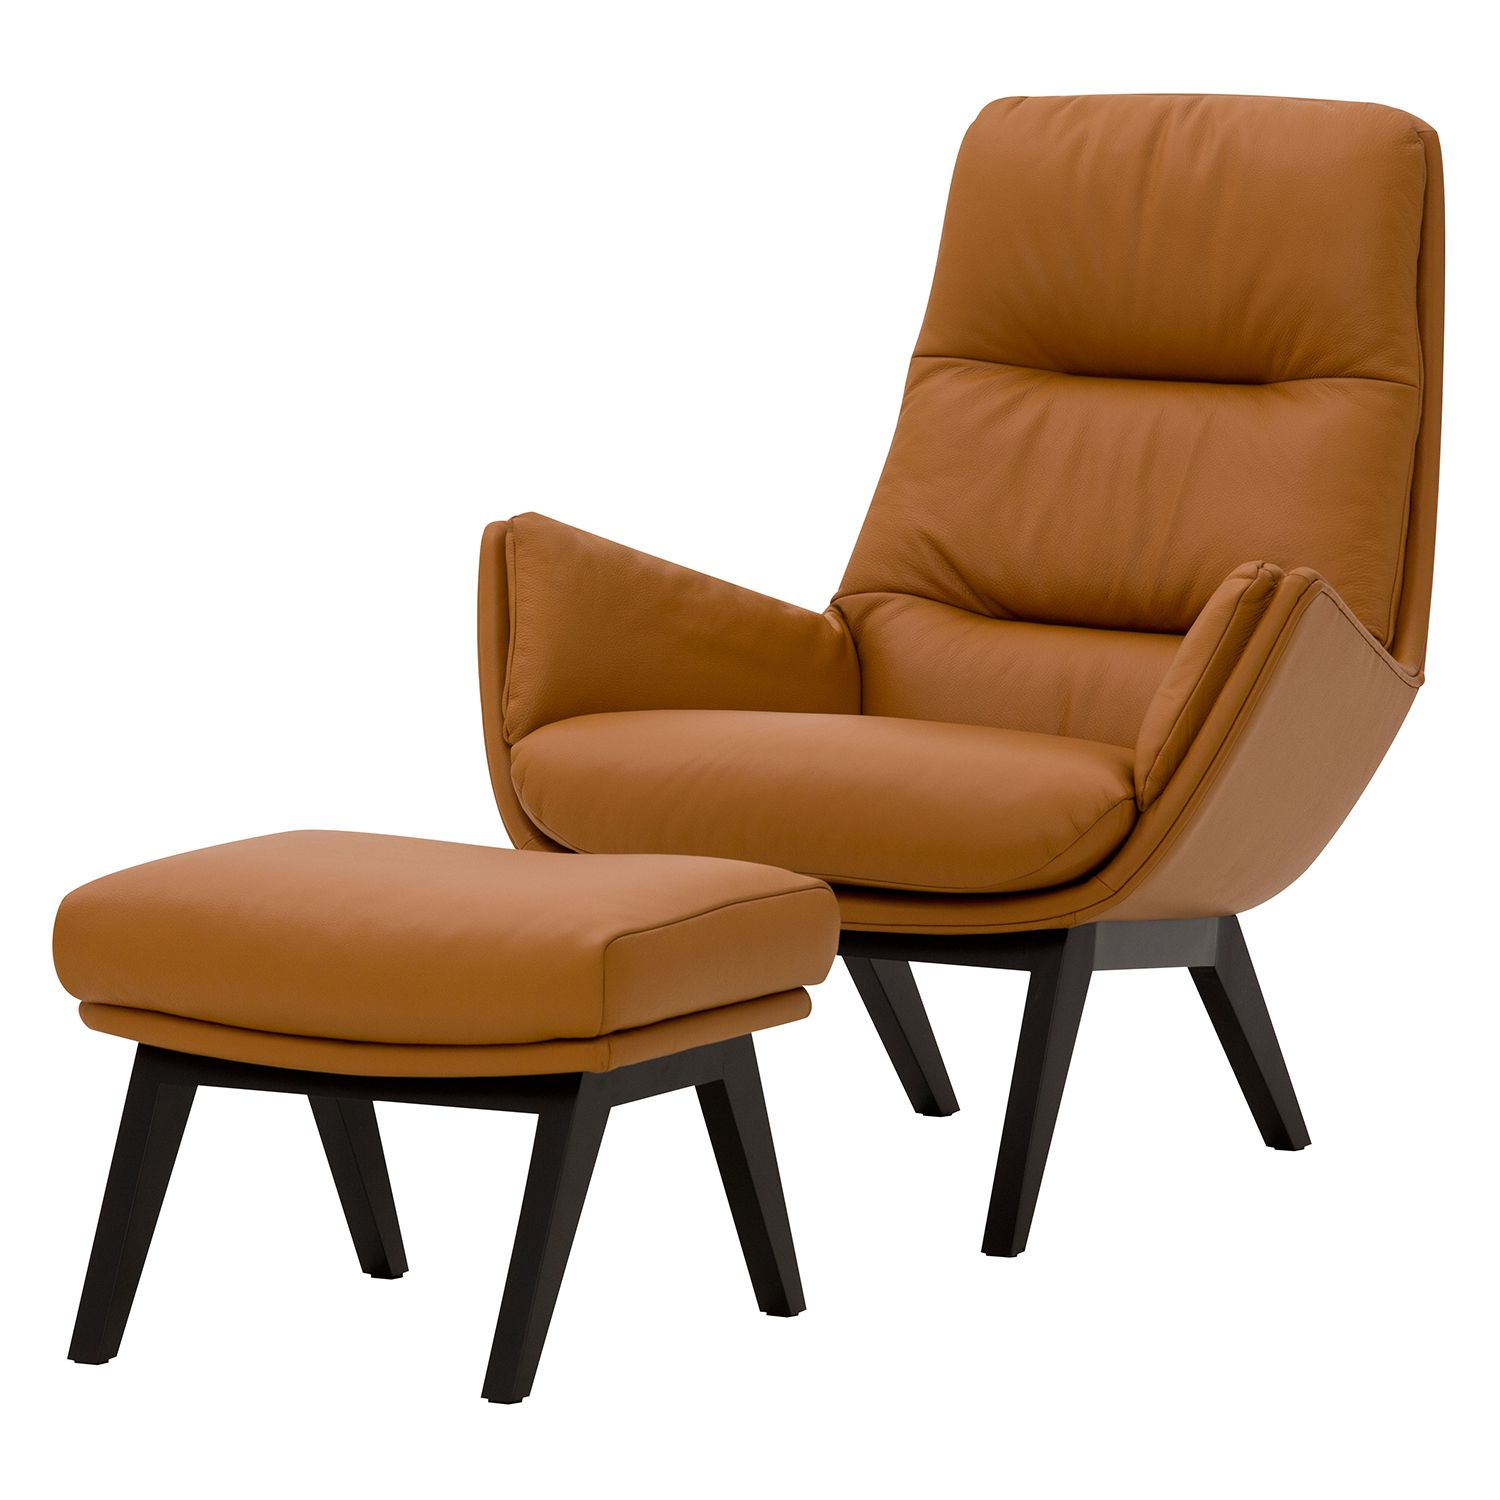 Sessel Cognac Sessel Cognac Cognac Brown Colored Original Leather Armchair In A